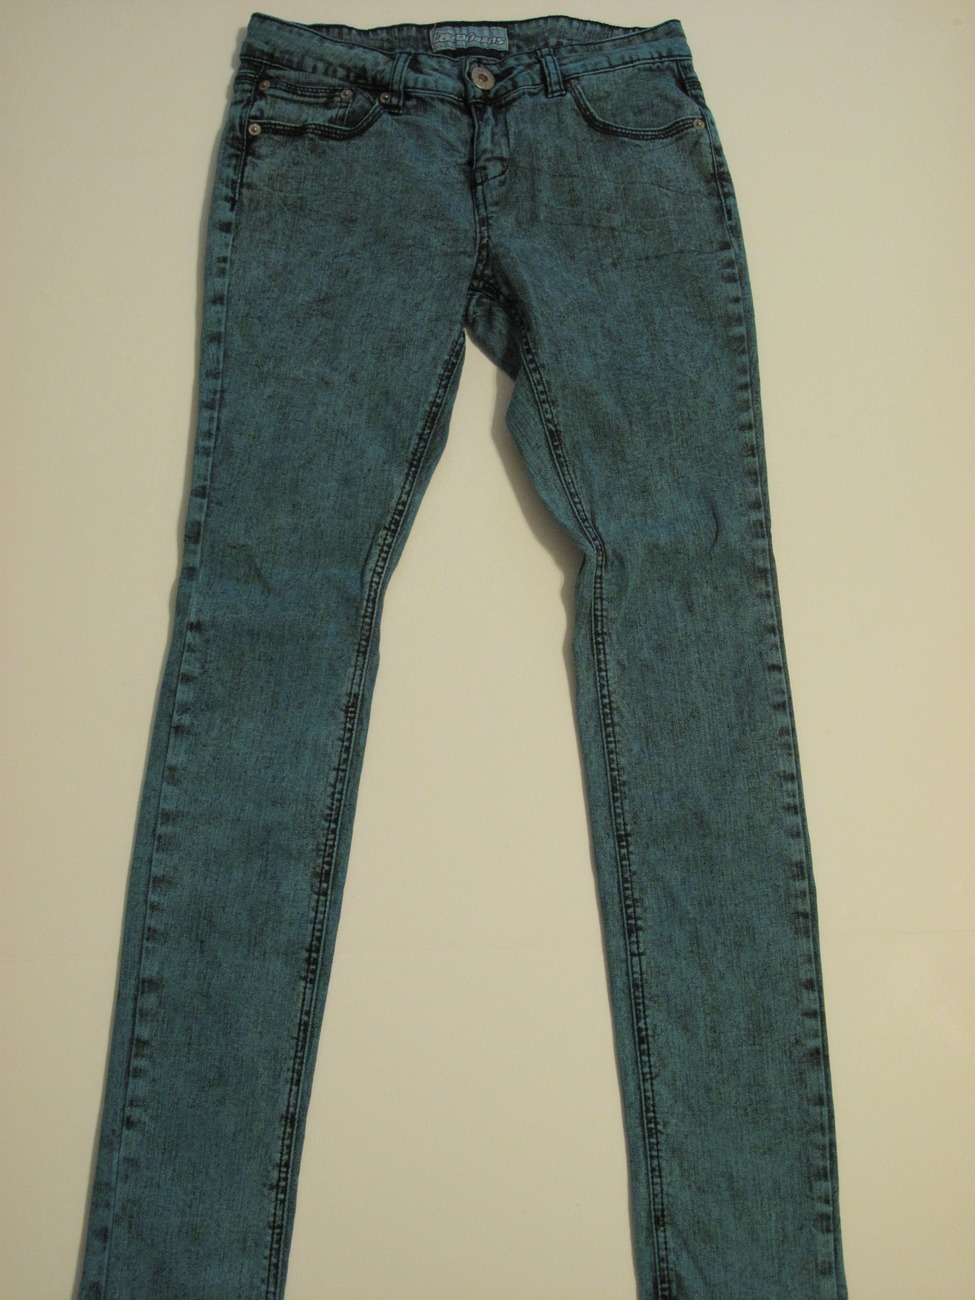 Primary image for Dark Turquoise Acid Wash Skinny Jeans, Size 7